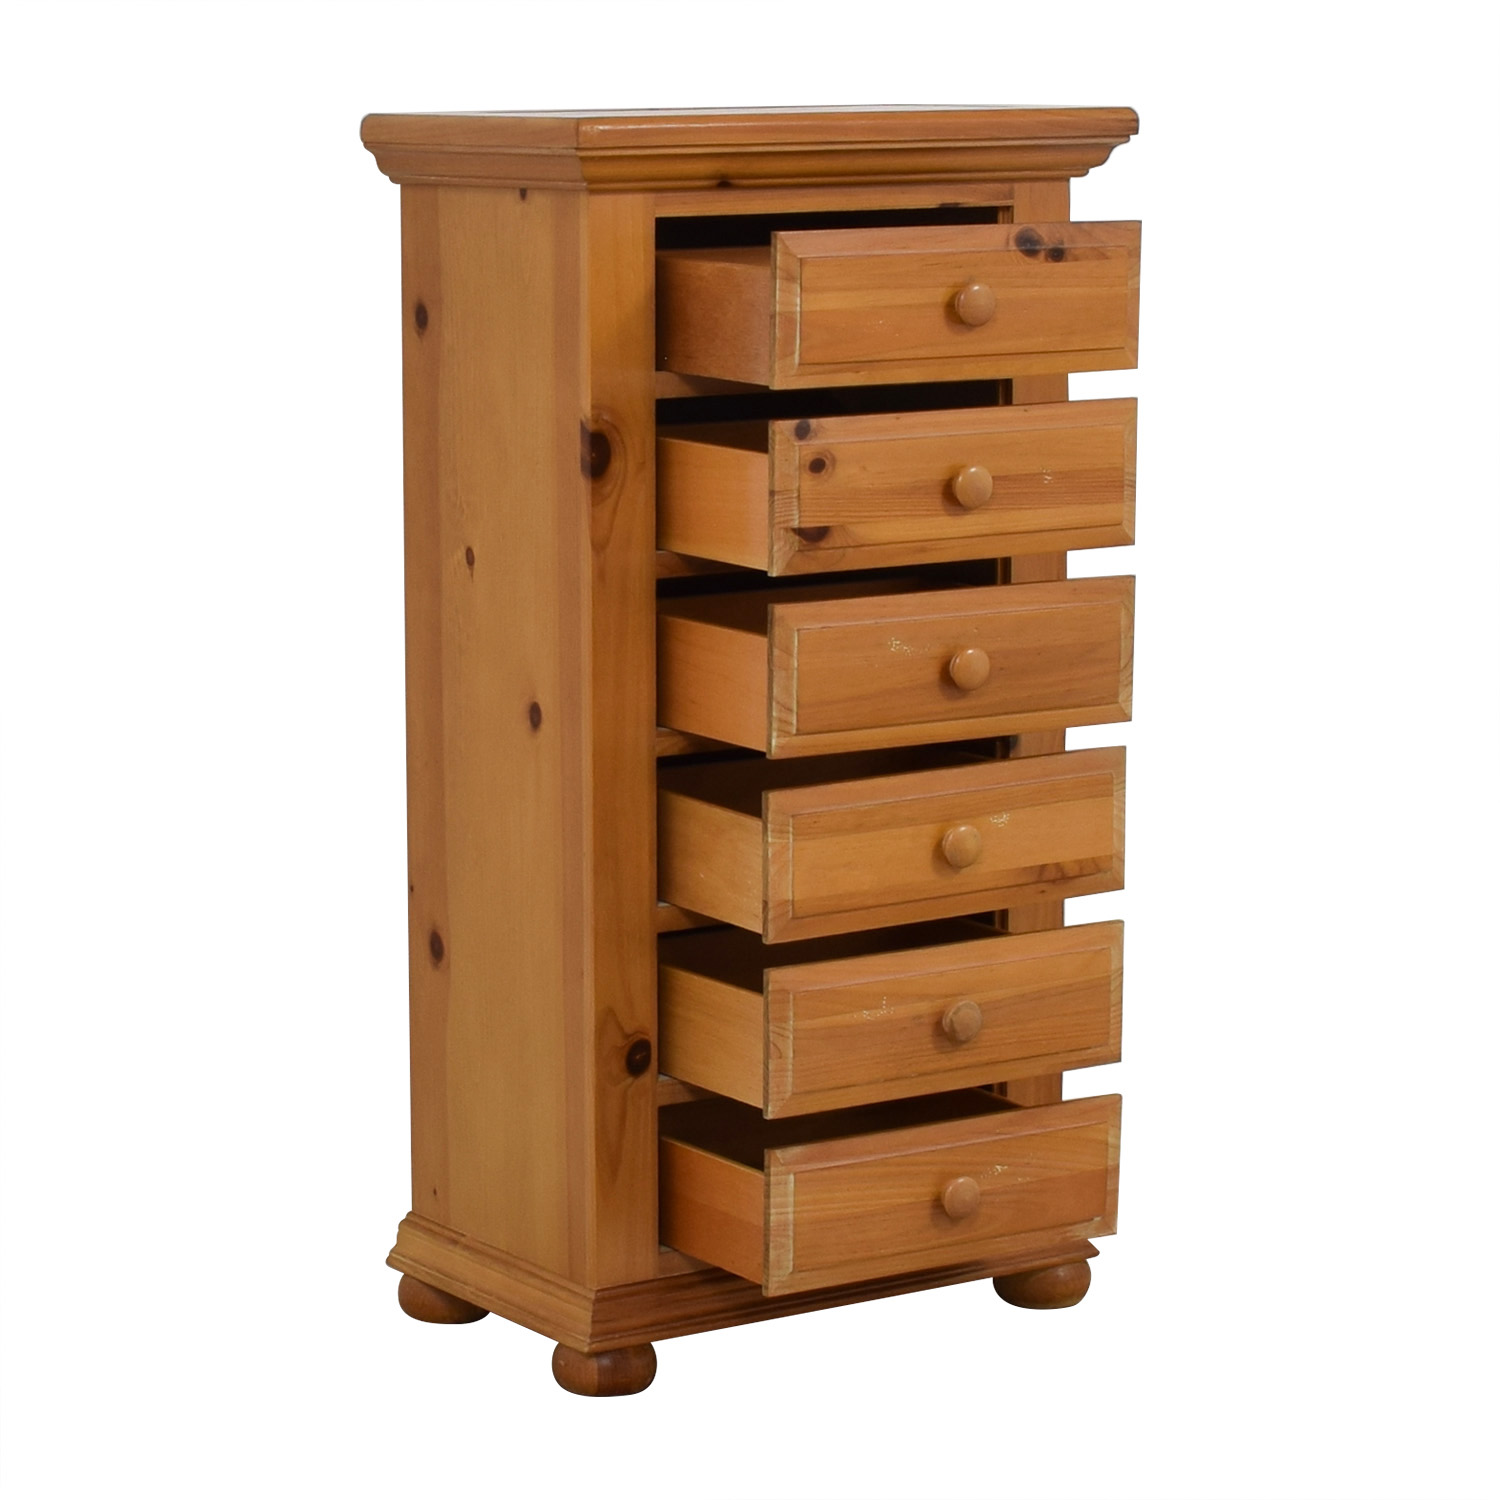 Broyhill Broyhill Pine Six-Drawer Lingerie Chest